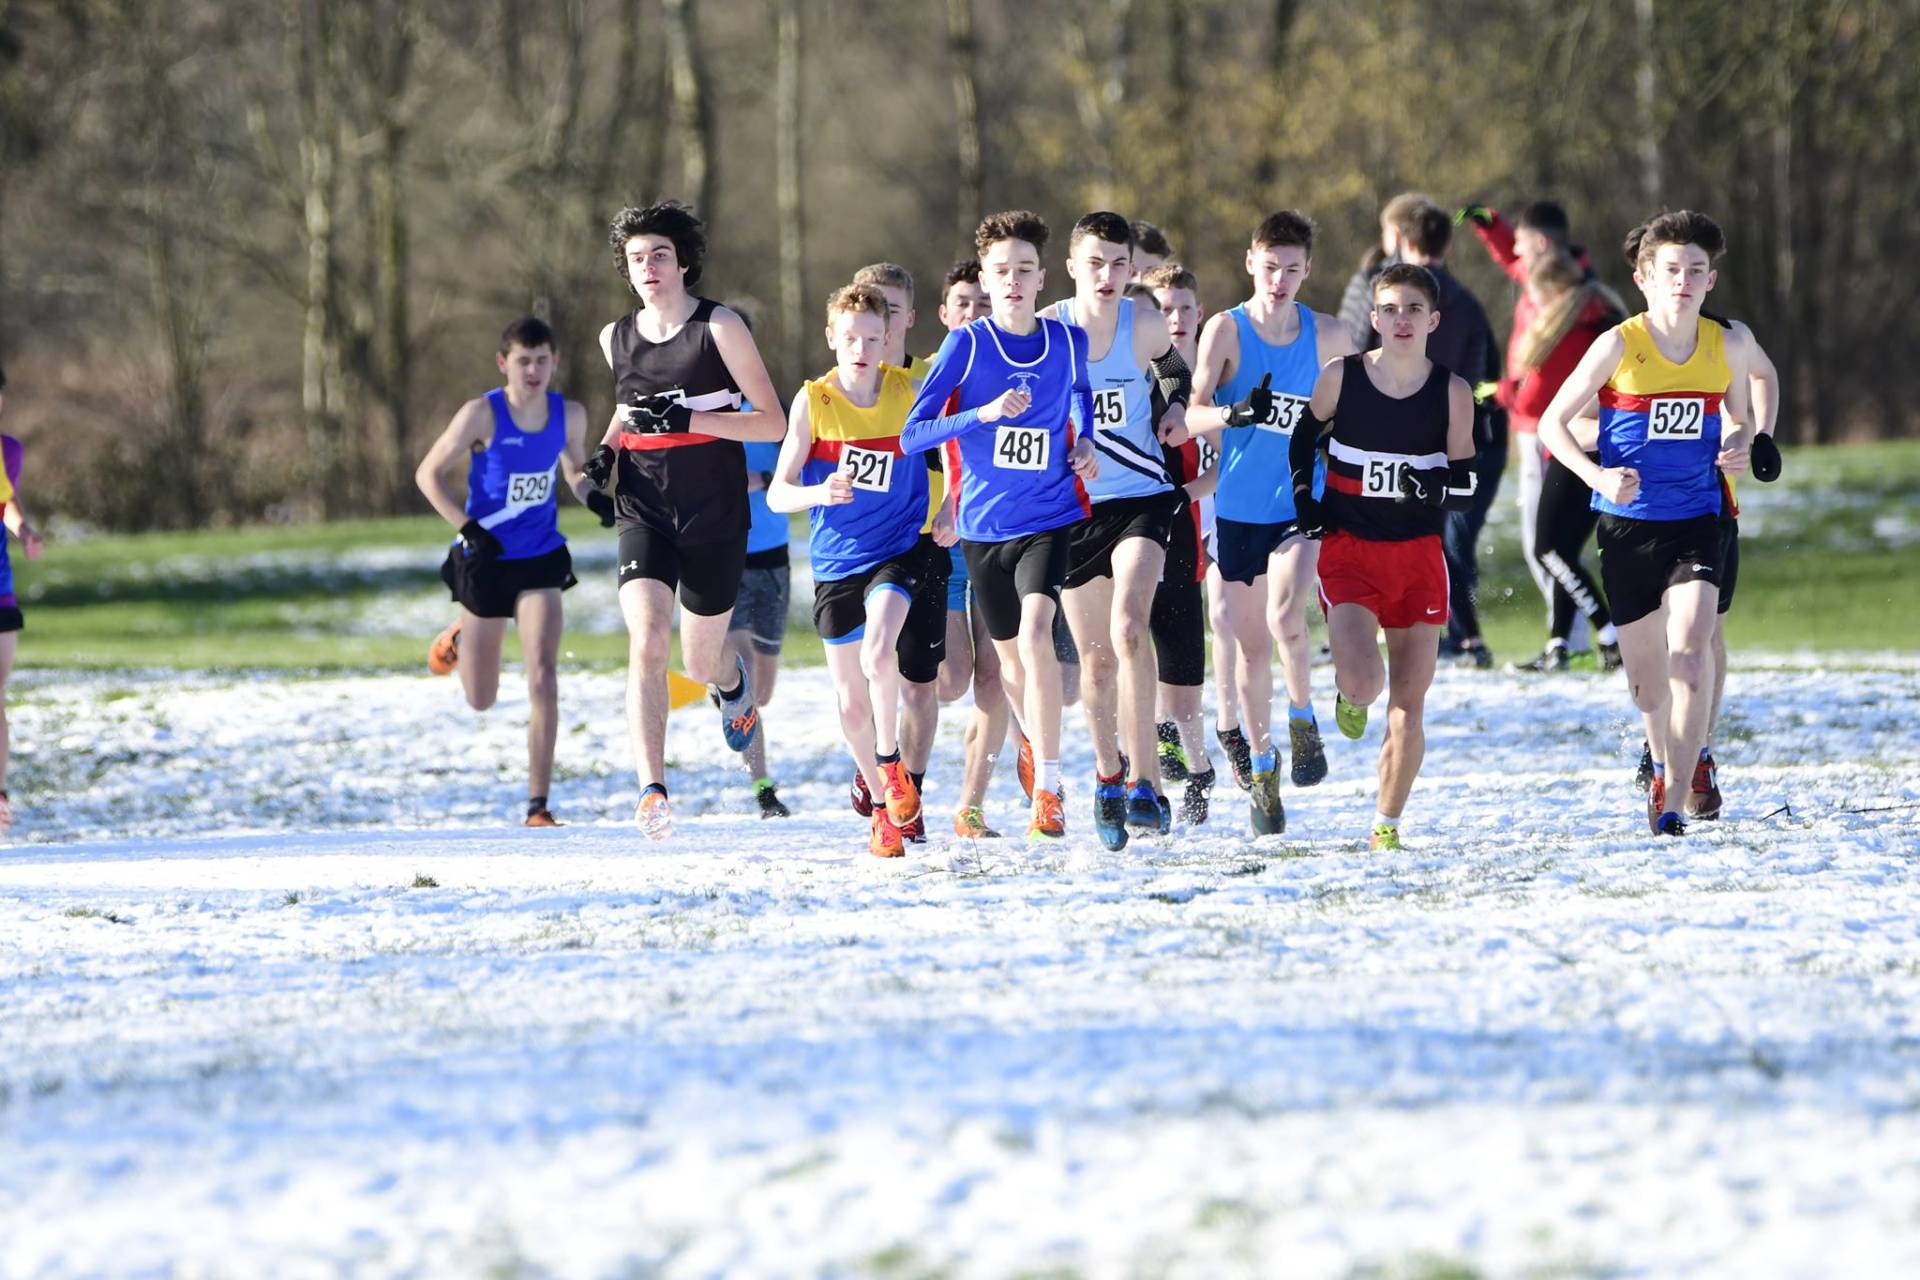 Matt Wins Lancashire Schools Title – Jess takes 4th at BUCS  XC Championships – Ben Wins Hurdles Silver Medal at Northern Champs – Victoria Wins Winter Warmer 10k & Harriers Win Team Race